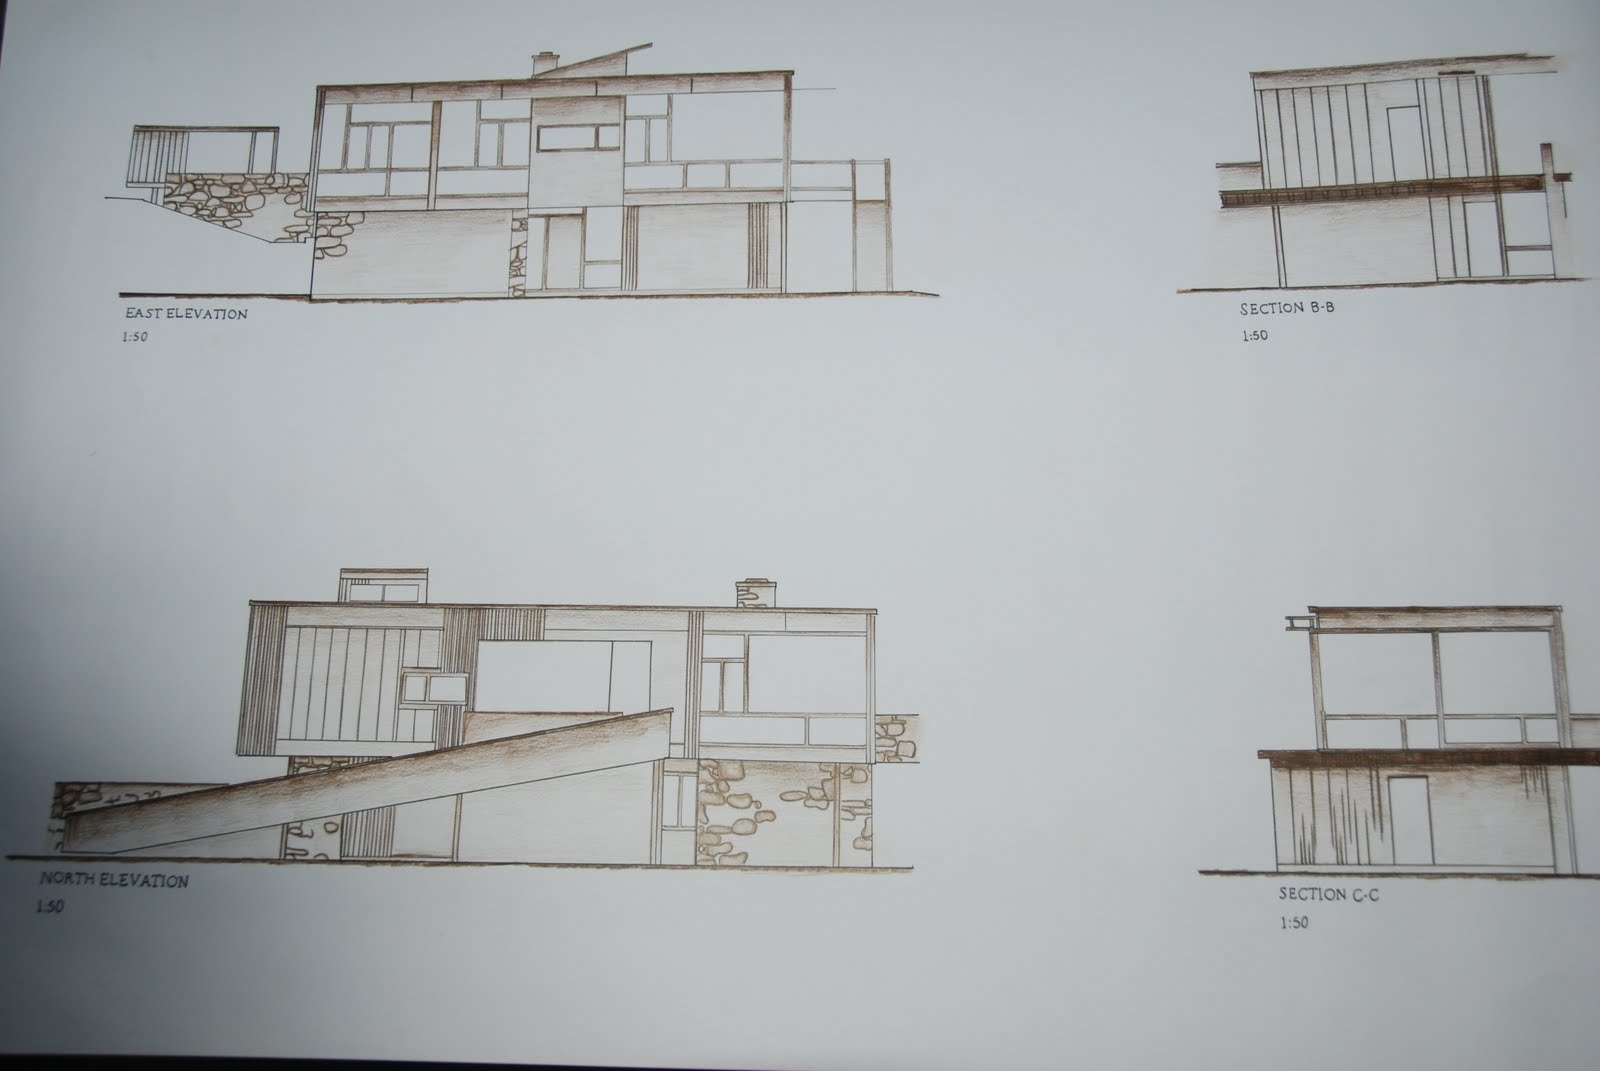 veronica ho  final submission of rose seidler house     rose seidler house  For my final submission  I used the elevations  sections and plans provided for the drawings and used only a brown pencil and lead